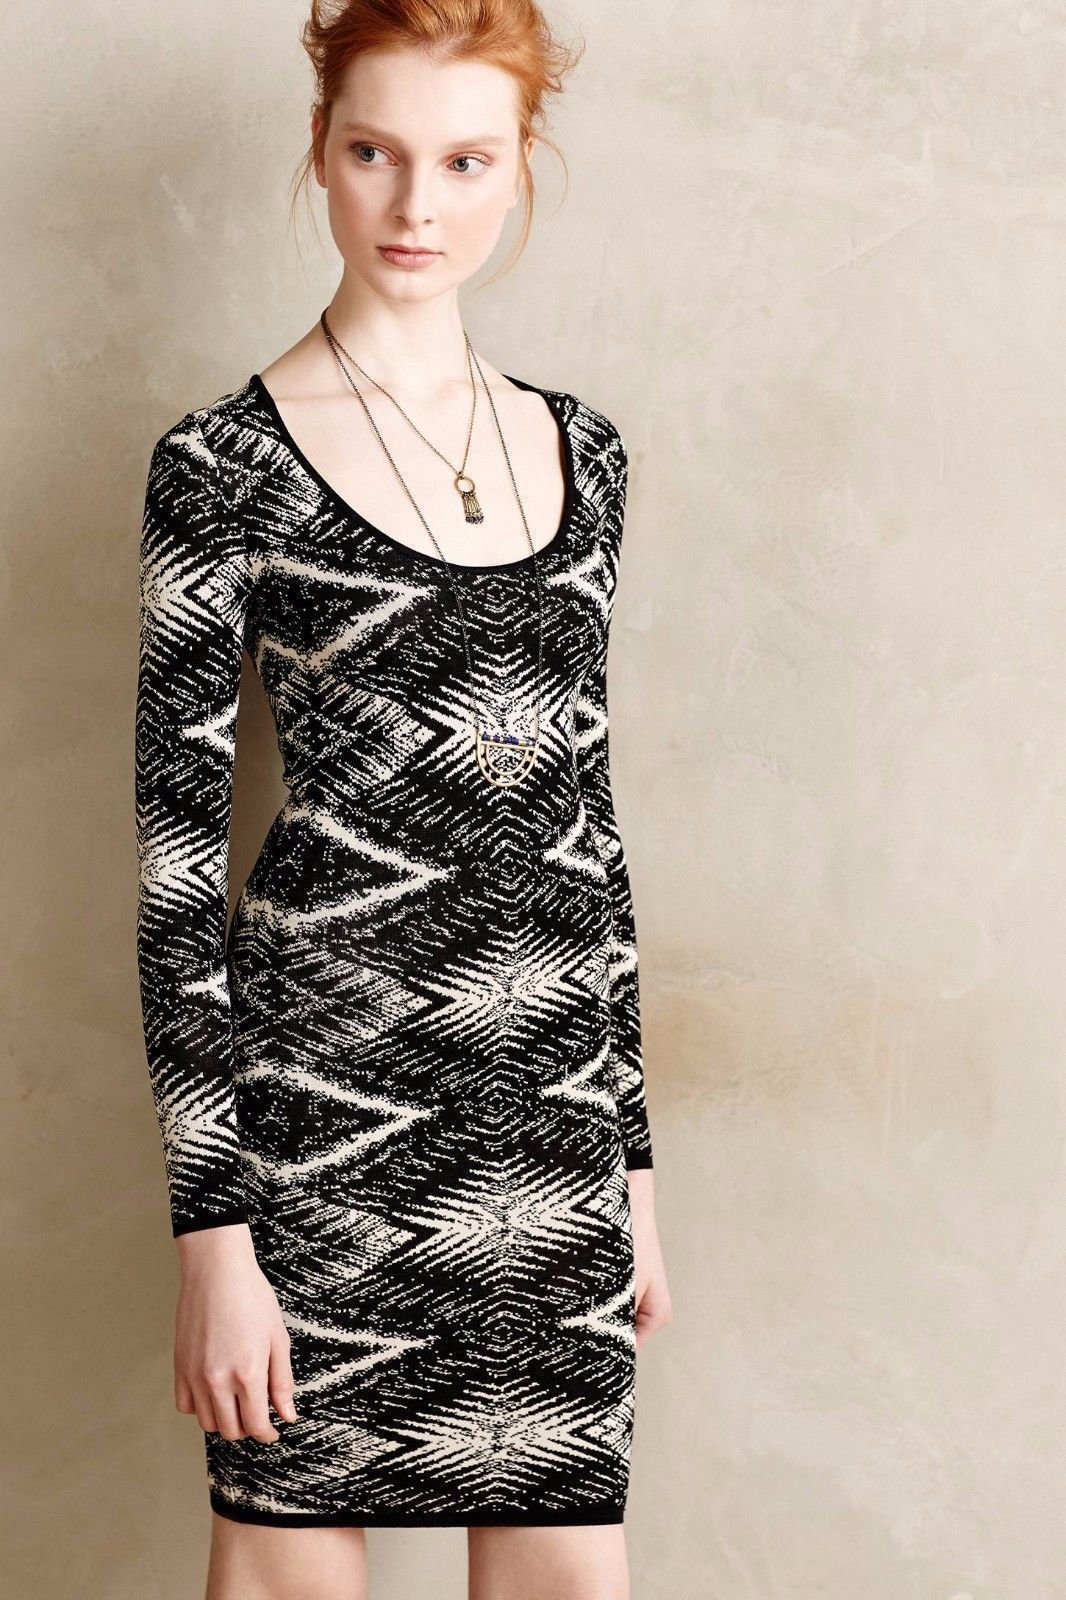 NWT TRACY REESE FELICITY PATTERNED KNIT BODYCON SWEATER DRESS M